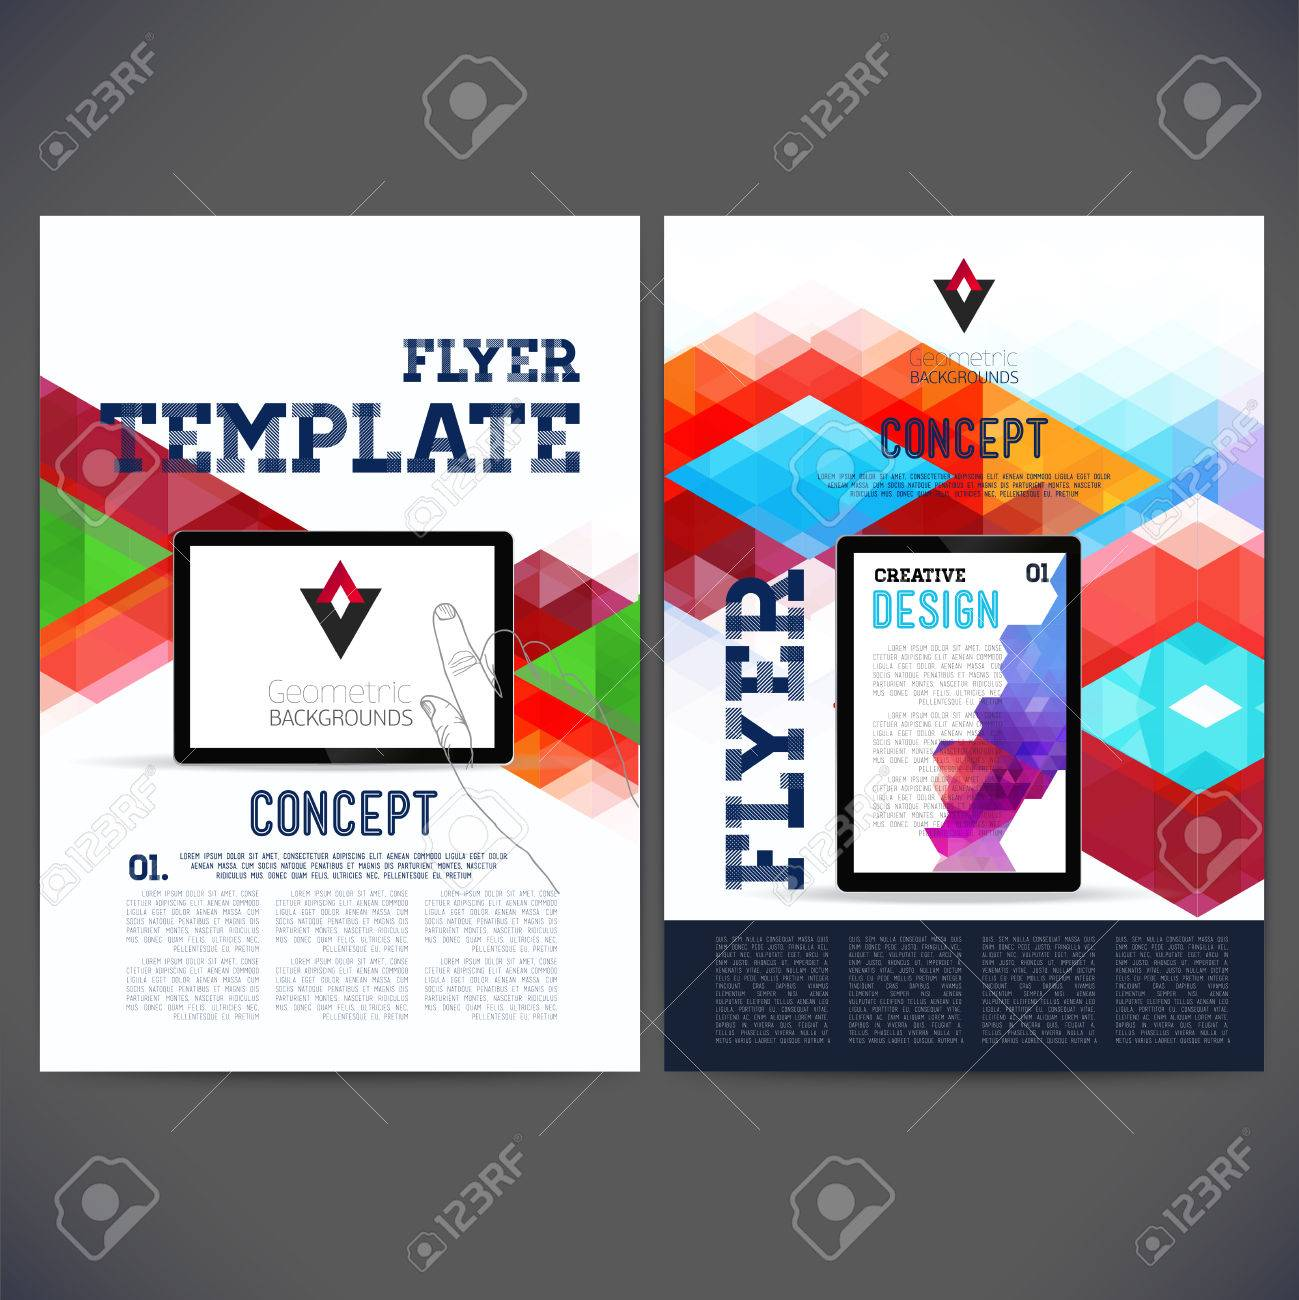 abstract flyer brochure design templates web sites page abstract flyer brochure design templates web sites page leaflet geometric triangular